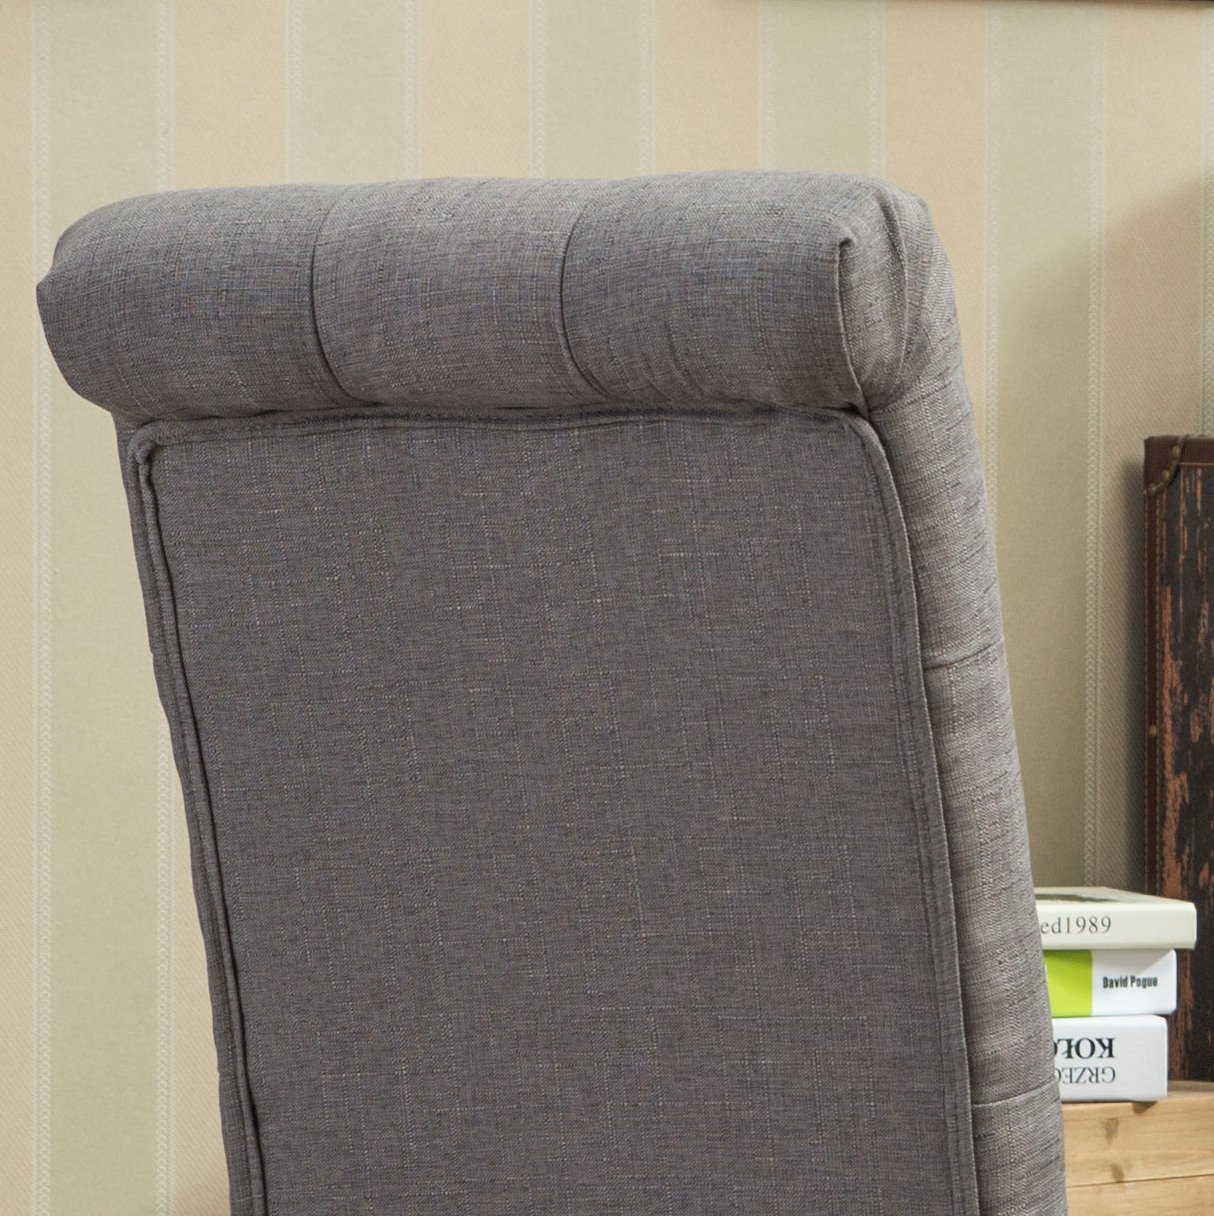 Roundhill Furniture Habit Grey Solid Wood Tufted Parsons Dining Chair (Set of 2), Gray by Roundhill Furniture (Image #6)